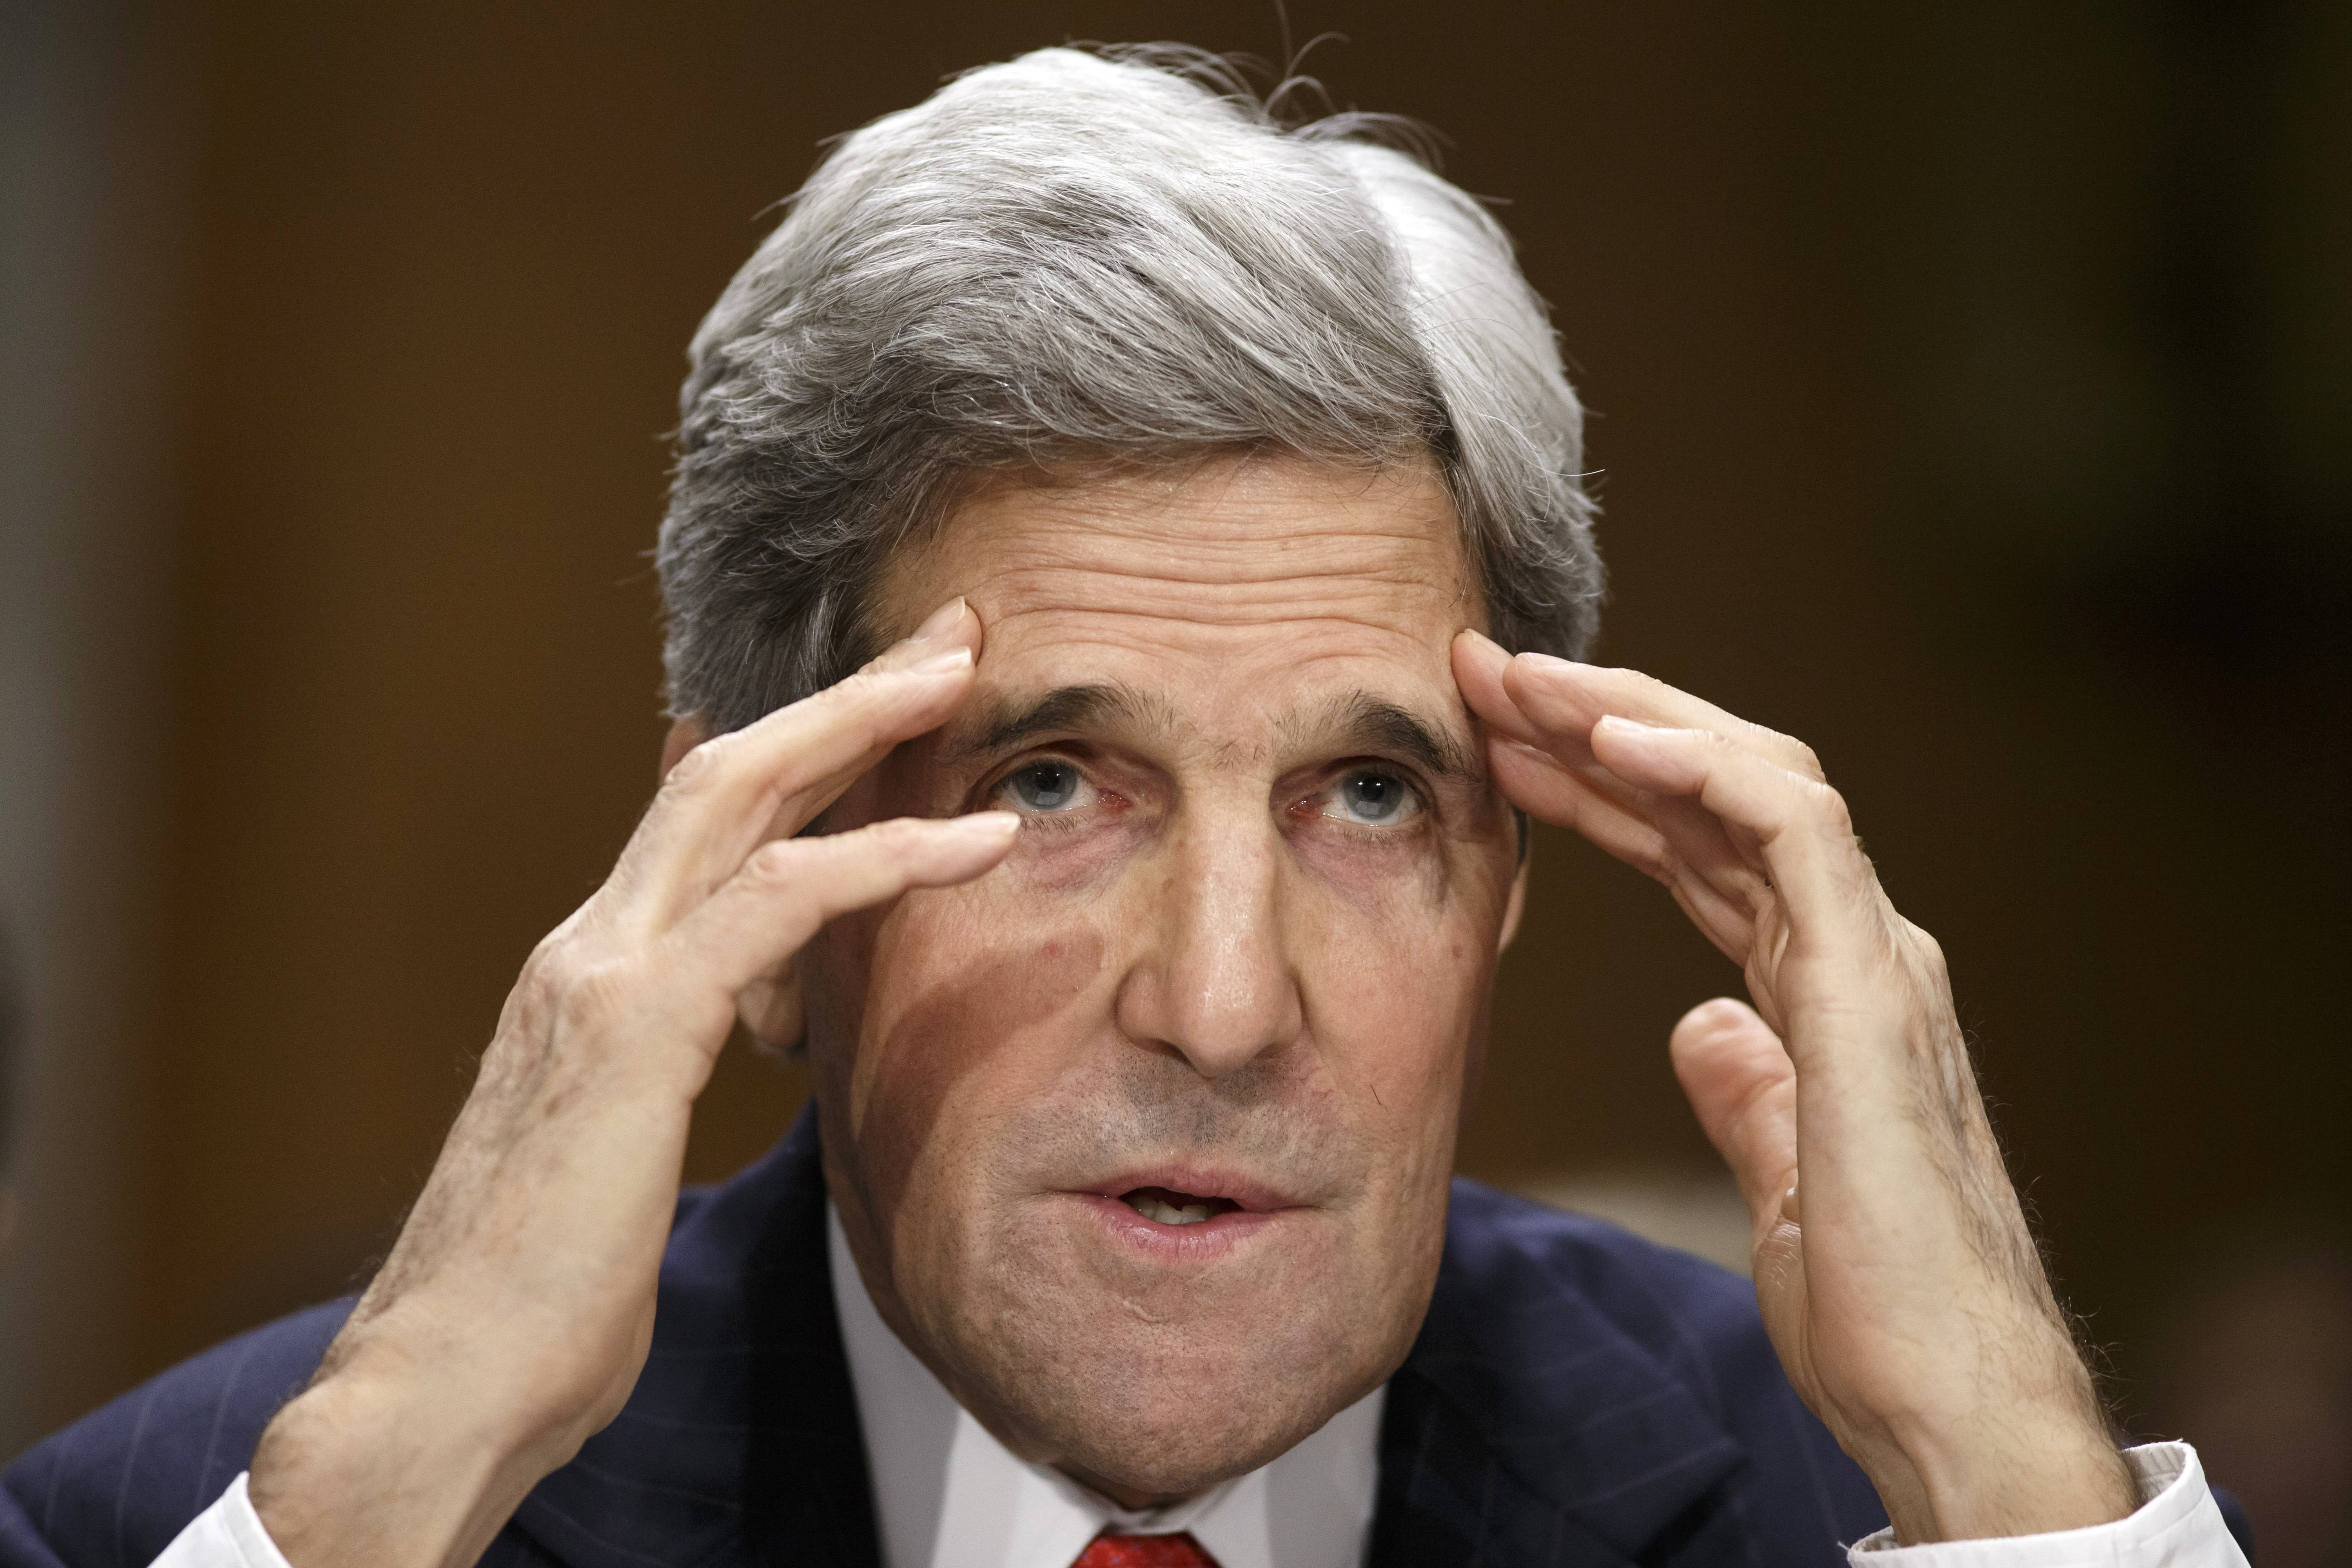 ASSOCIATED PRESS Secretary of State John Kerry testifies on Capitol Hill Tuesday before the Senate Foreign Relations Committee to discuss his budget and the status of diplomatic hot spots. Lawmakers' questions focused on Russia, Ukraine, Iran and Syria.